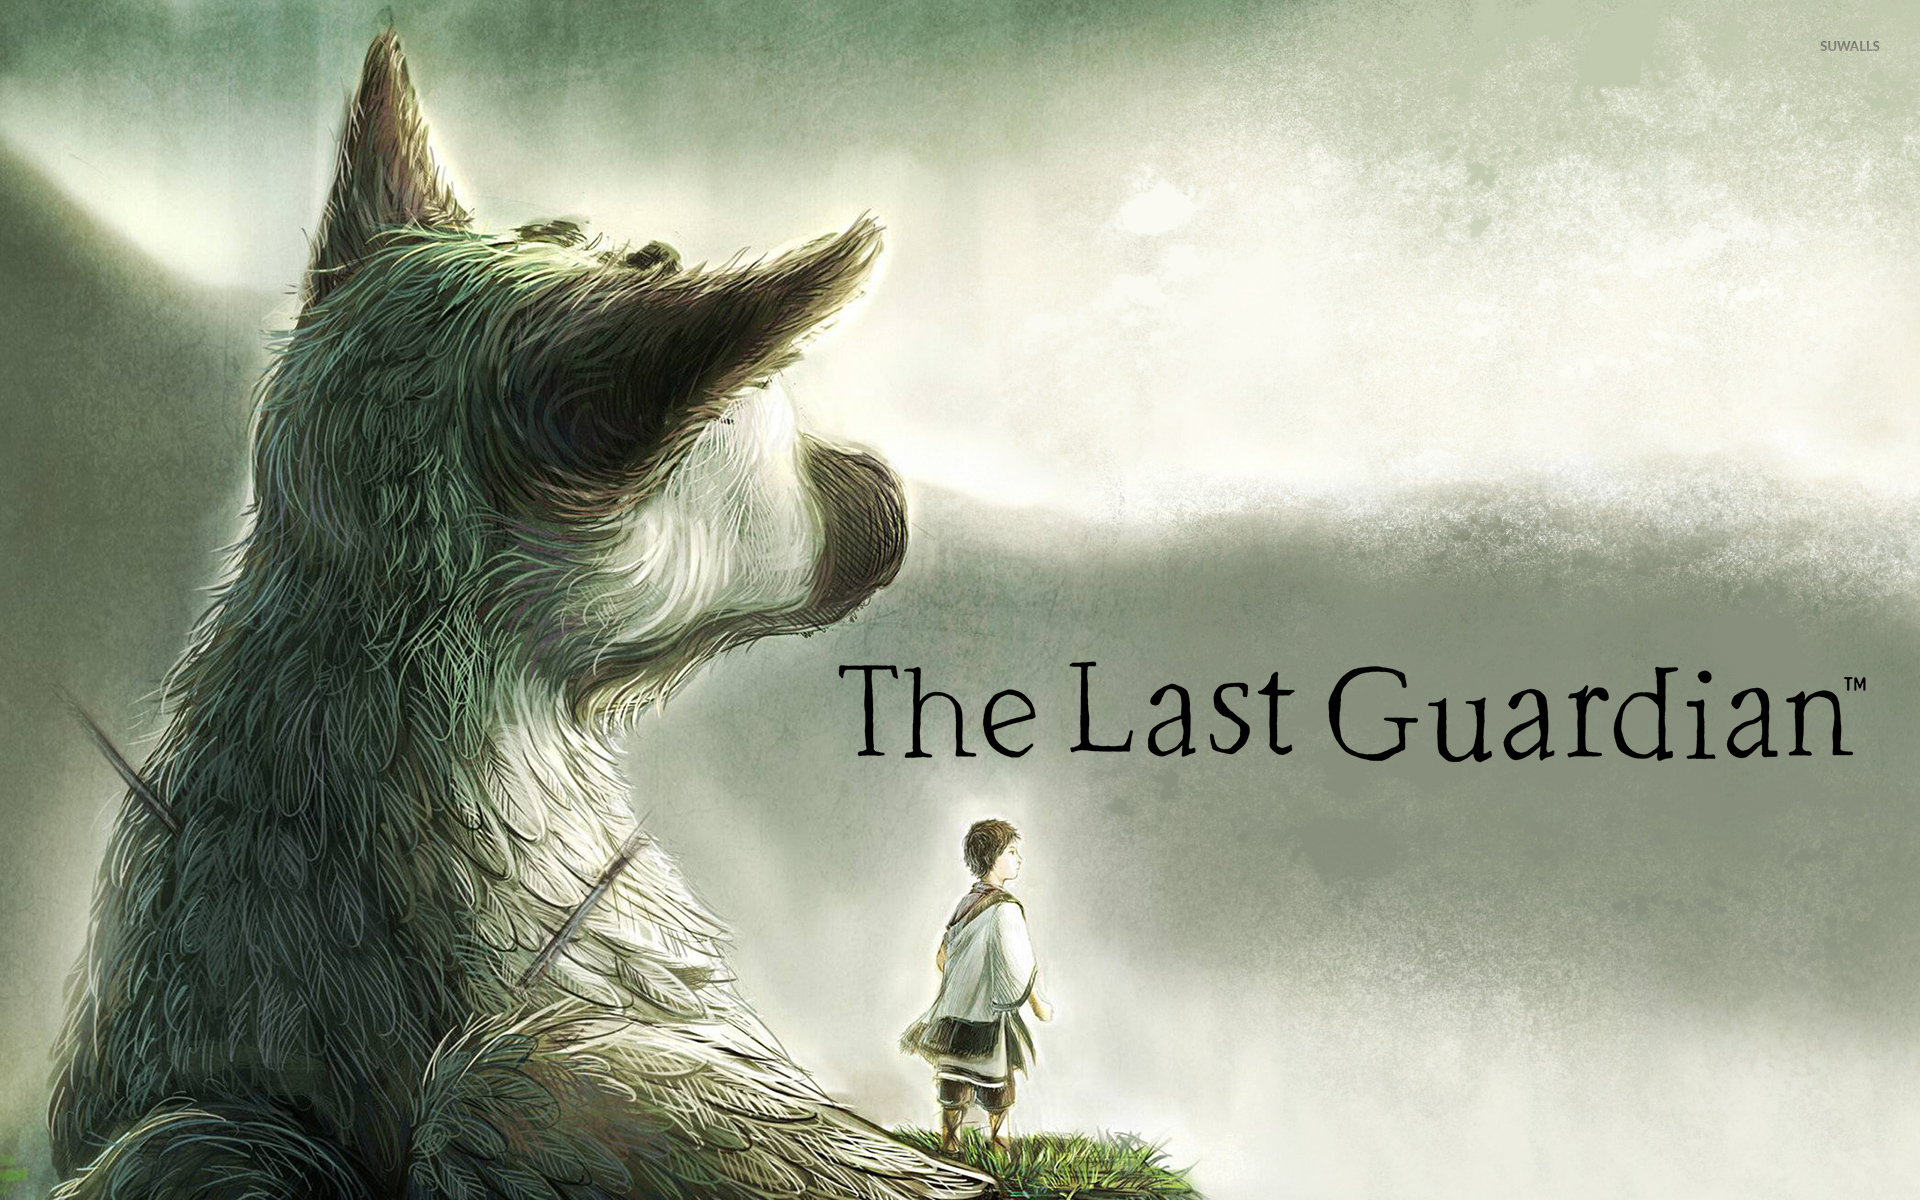 Trico And The Boy In The Last Guardian Wallpaper Game Wallpapers